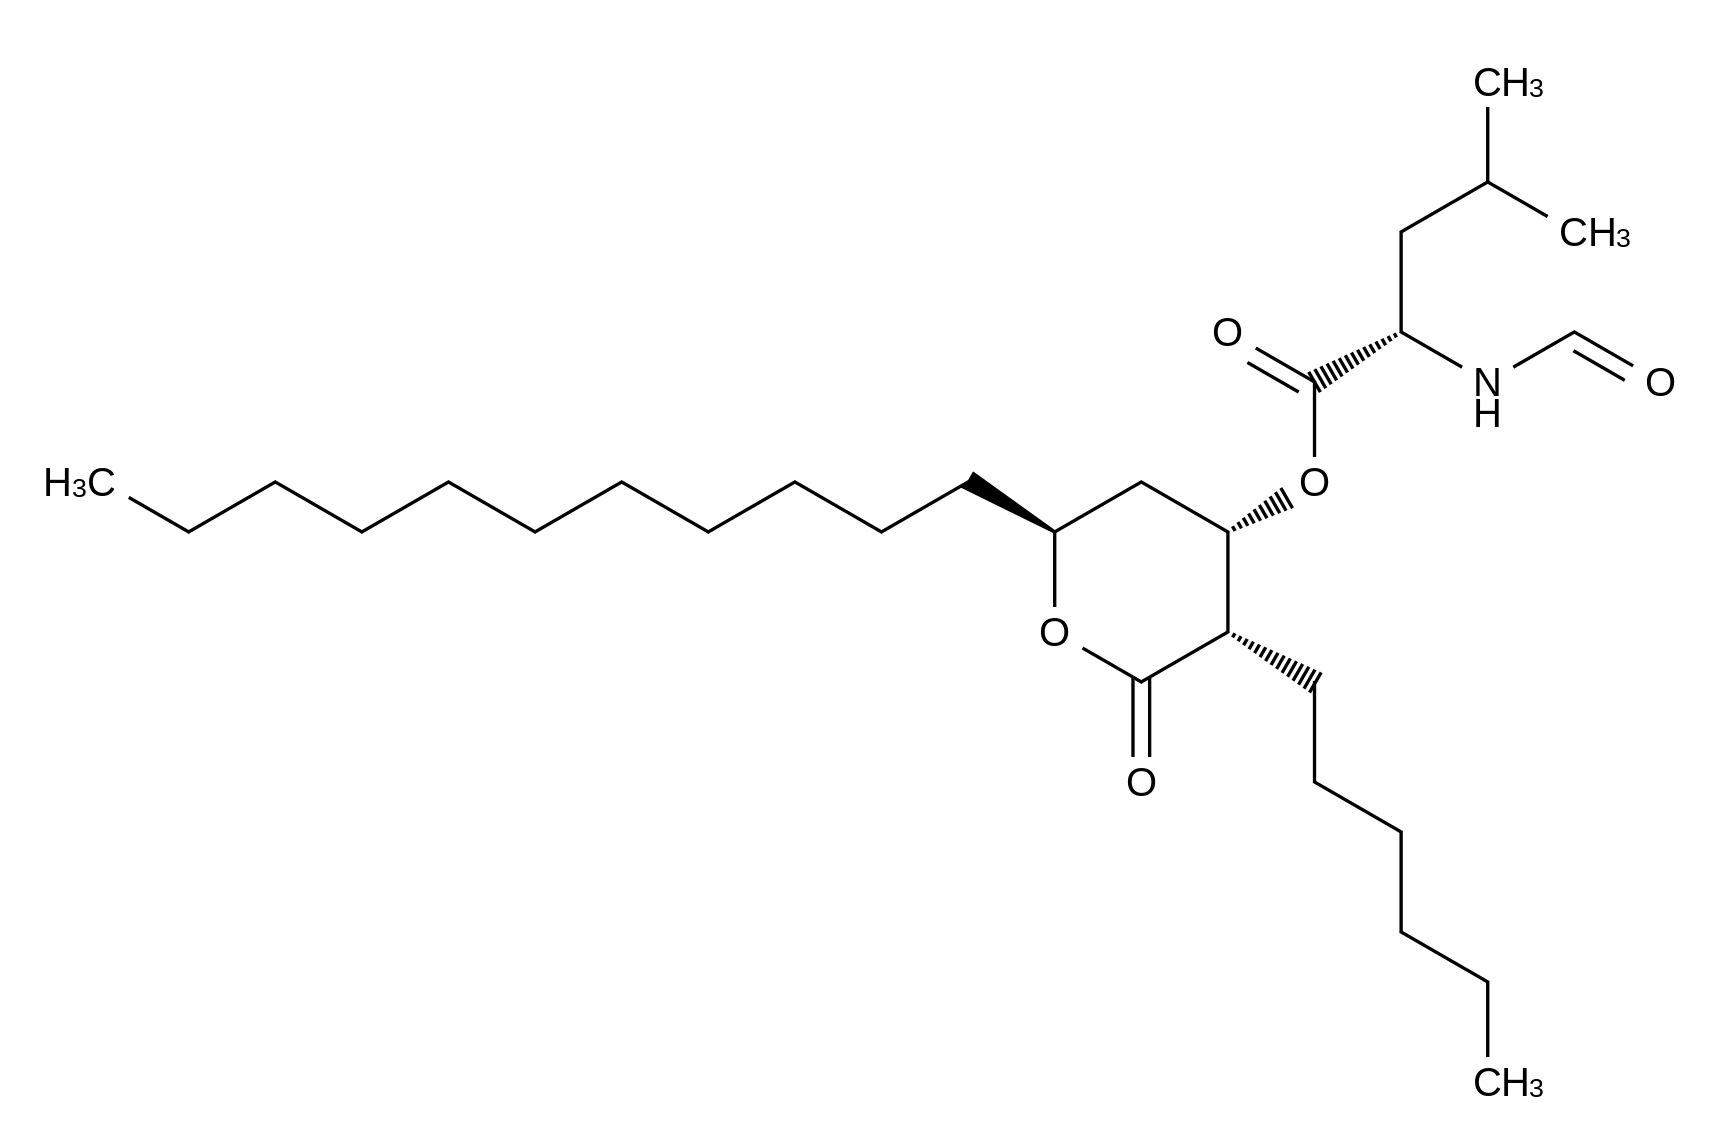 N-Formyl-L-leucine (3S,4S,6S)-3-Hexyltetrahydro-2-oxo-6-undecyl-2H-pyran-4-yl Ester